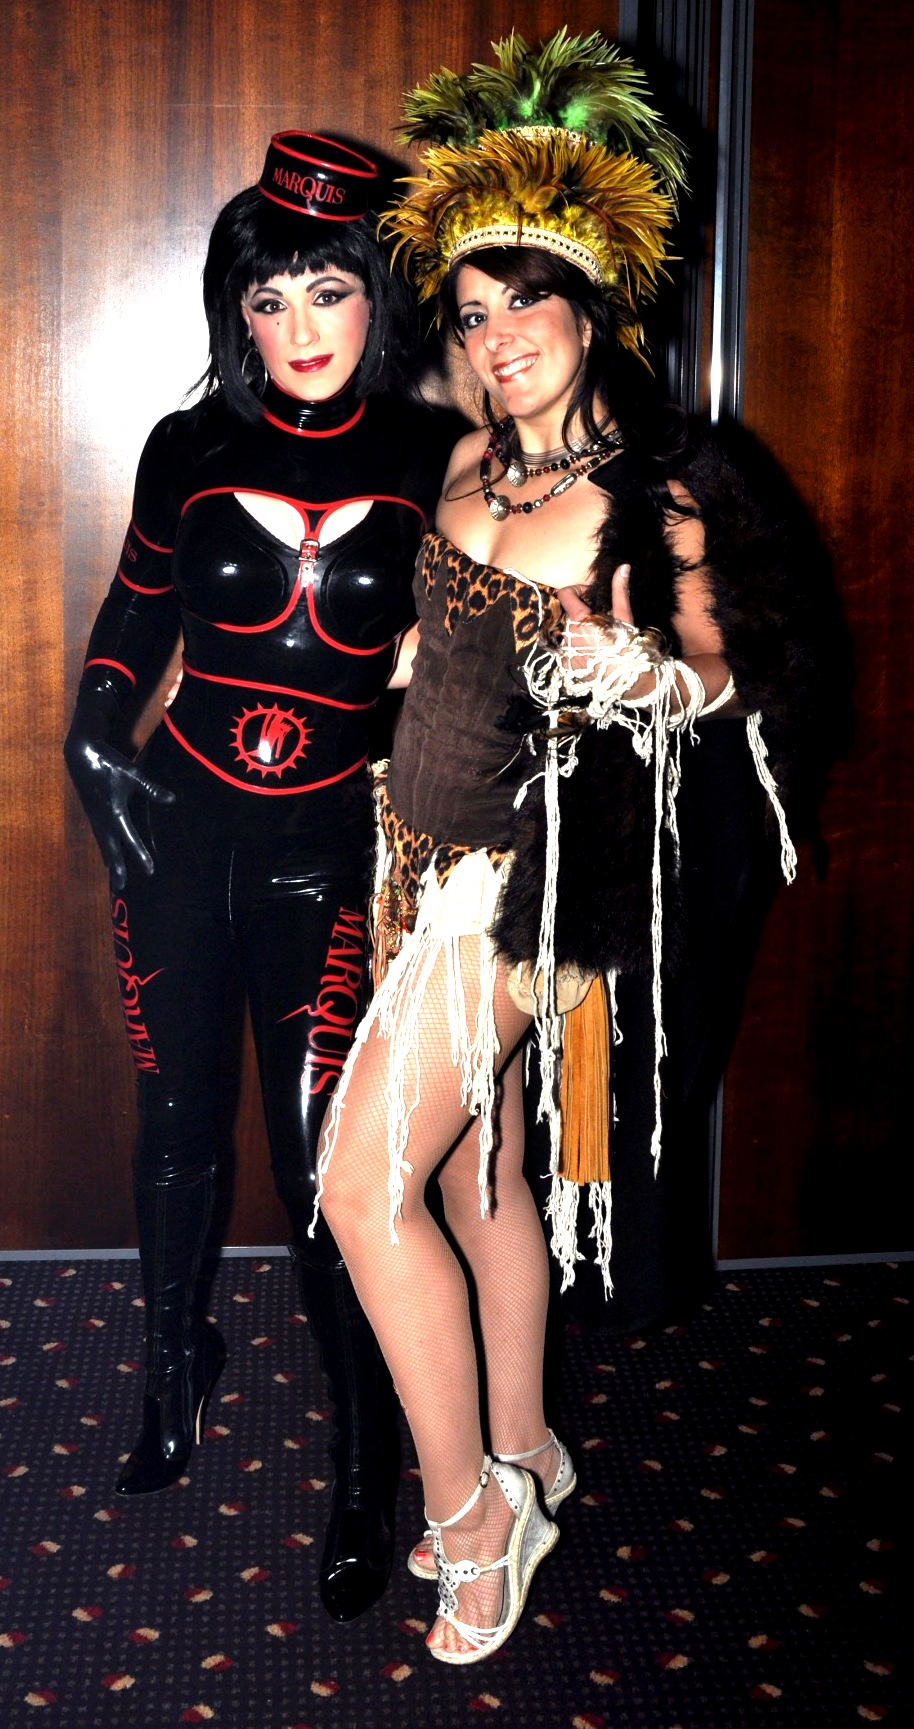 Choose role plays that suit a skimpy outfit. MKM as Voodoo Queen with Marquis Embassador, Nicci Tristan.